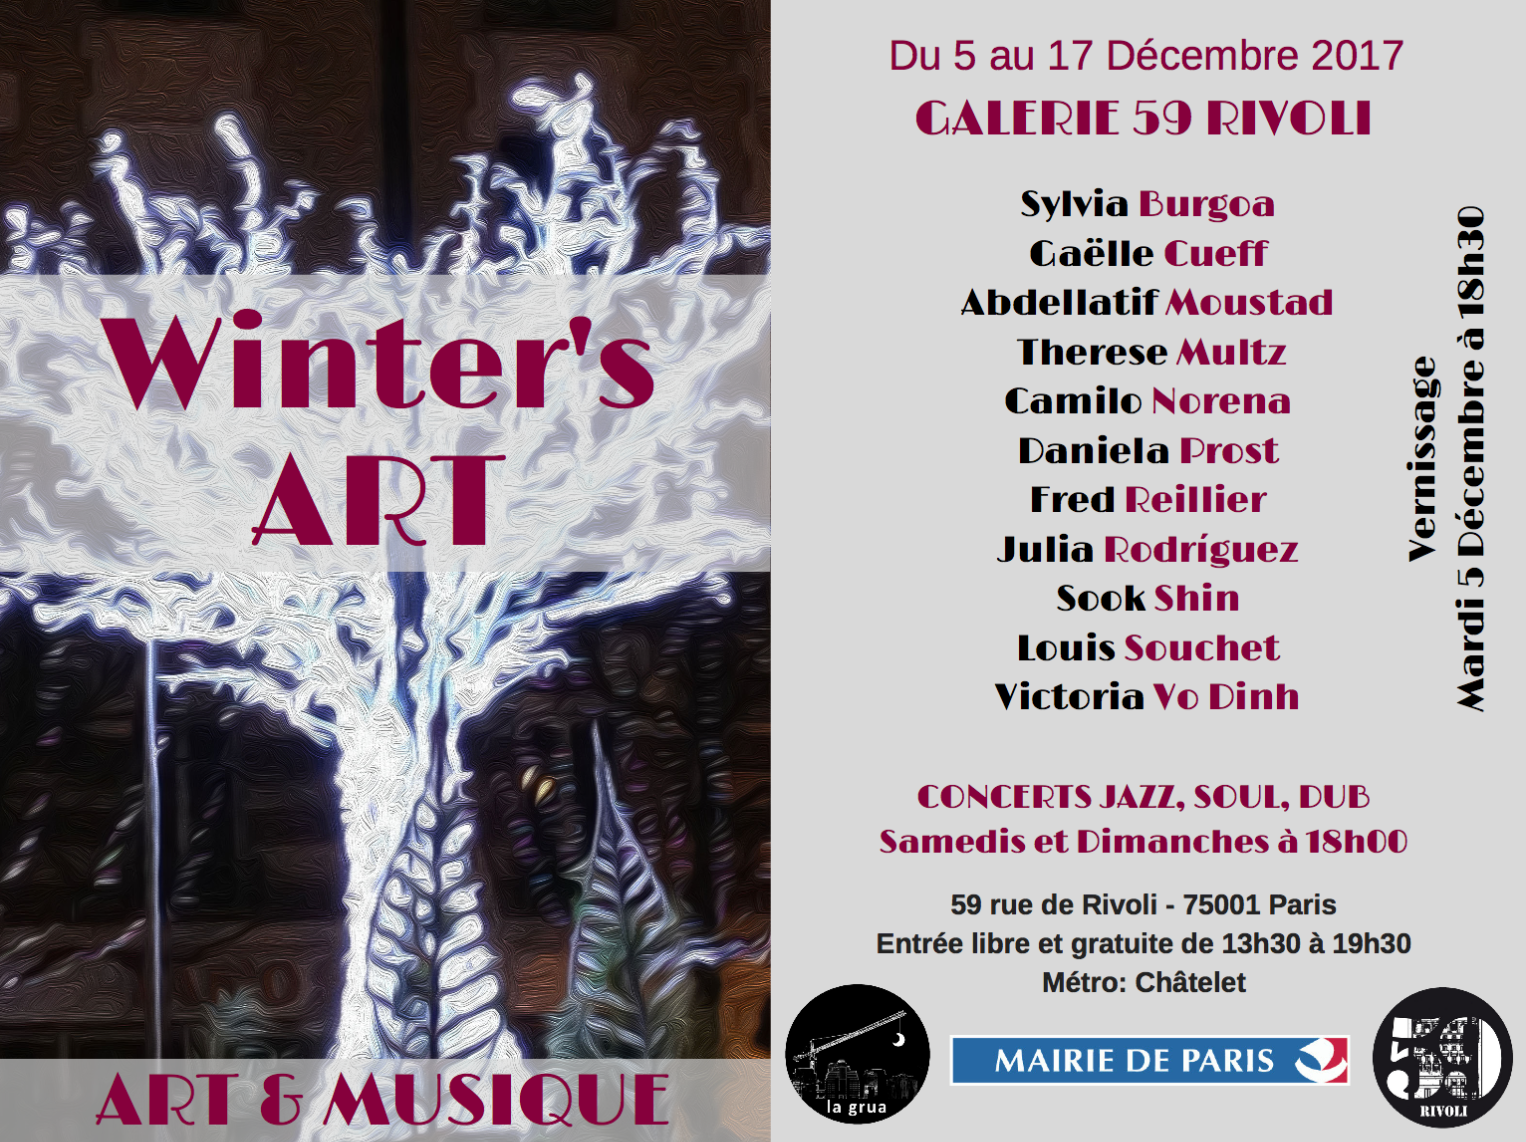 Nouvelle expo au 59 rue de Rivoli : Winter's Art